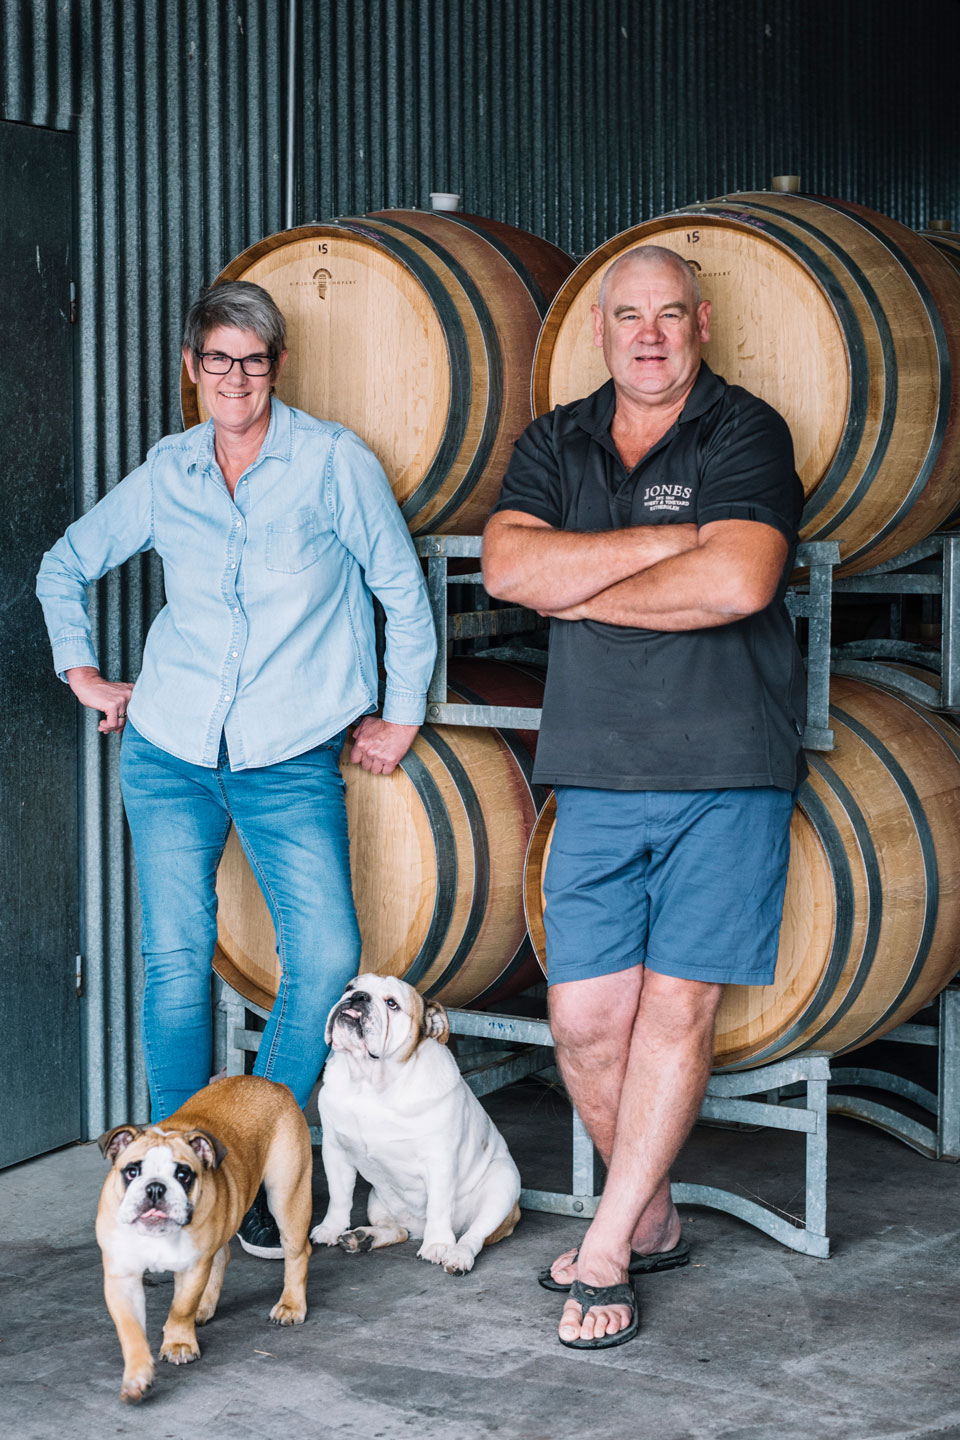 Mandy and Arthur Jones  of Jones Winery